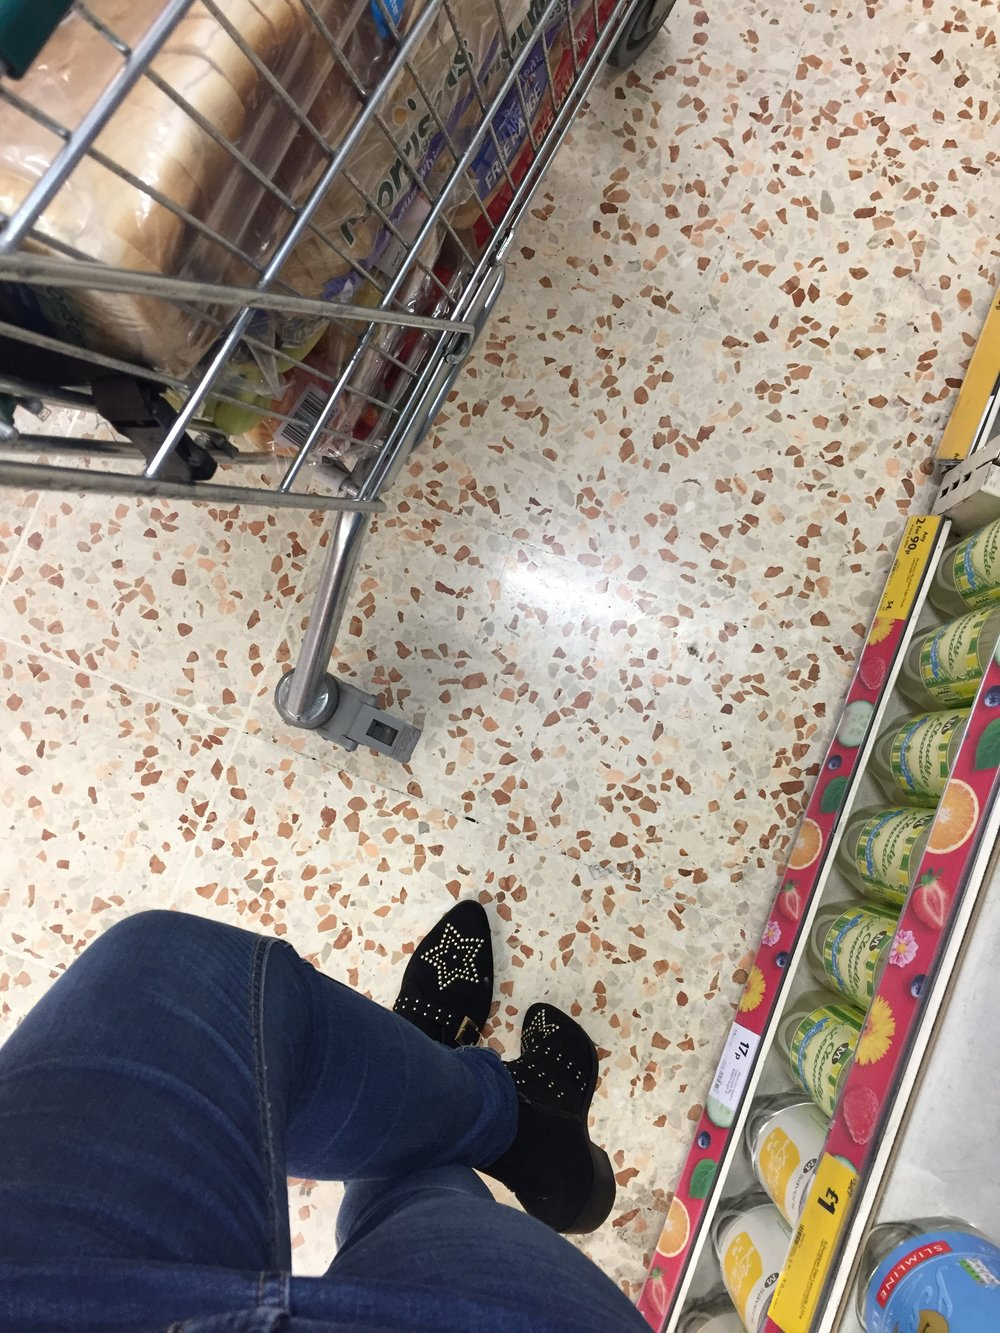 Taking THOSE Primark boots for a spin in Morrisons.